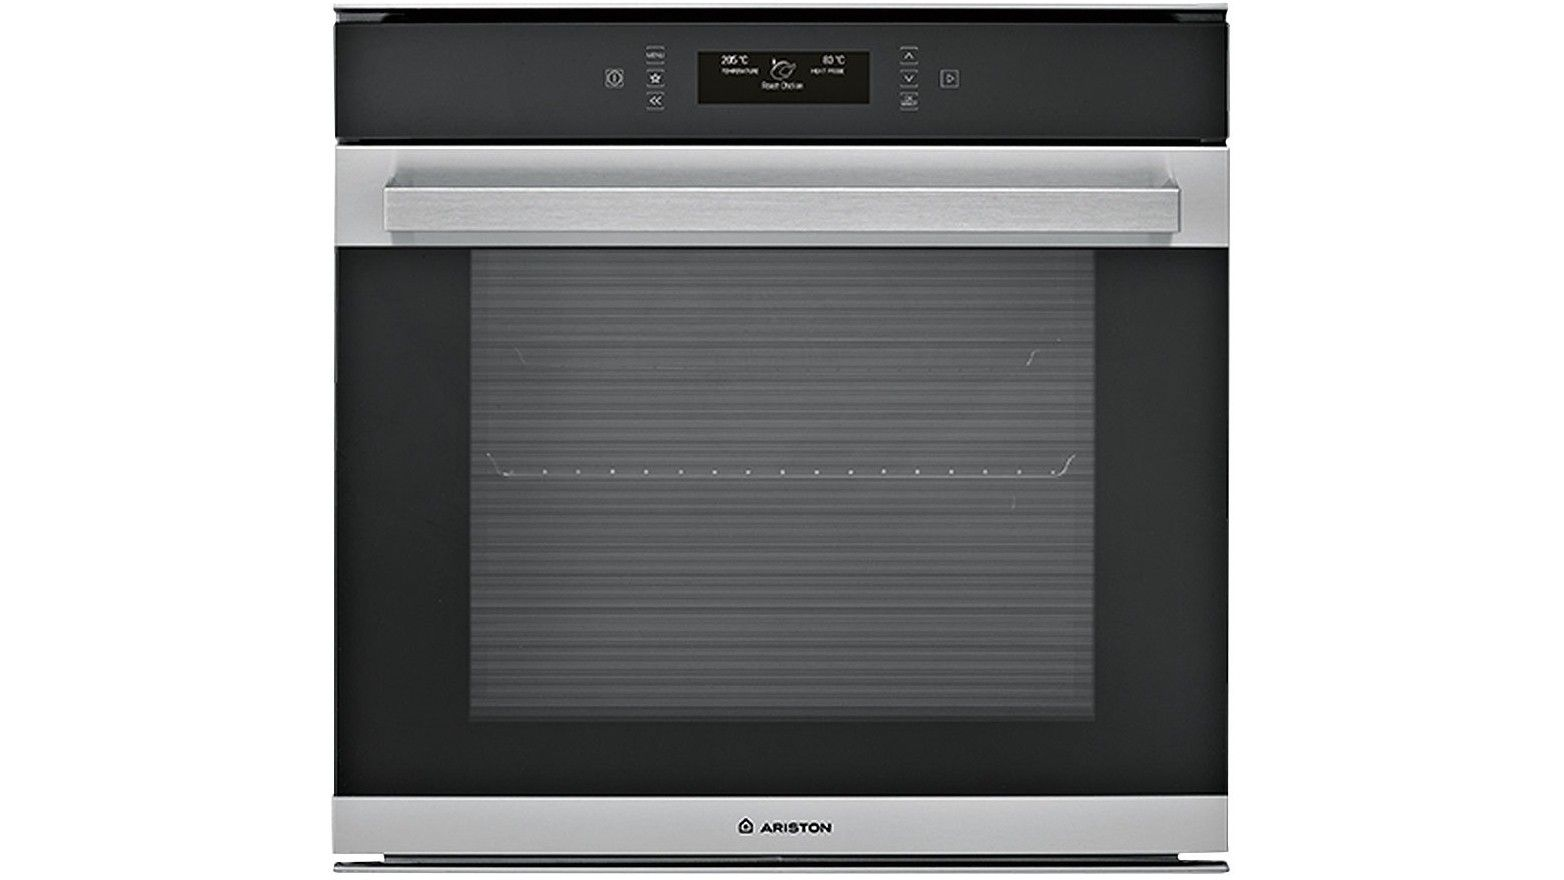 Ariston 60cm MultiFunction Built In Pyrolytic Oven